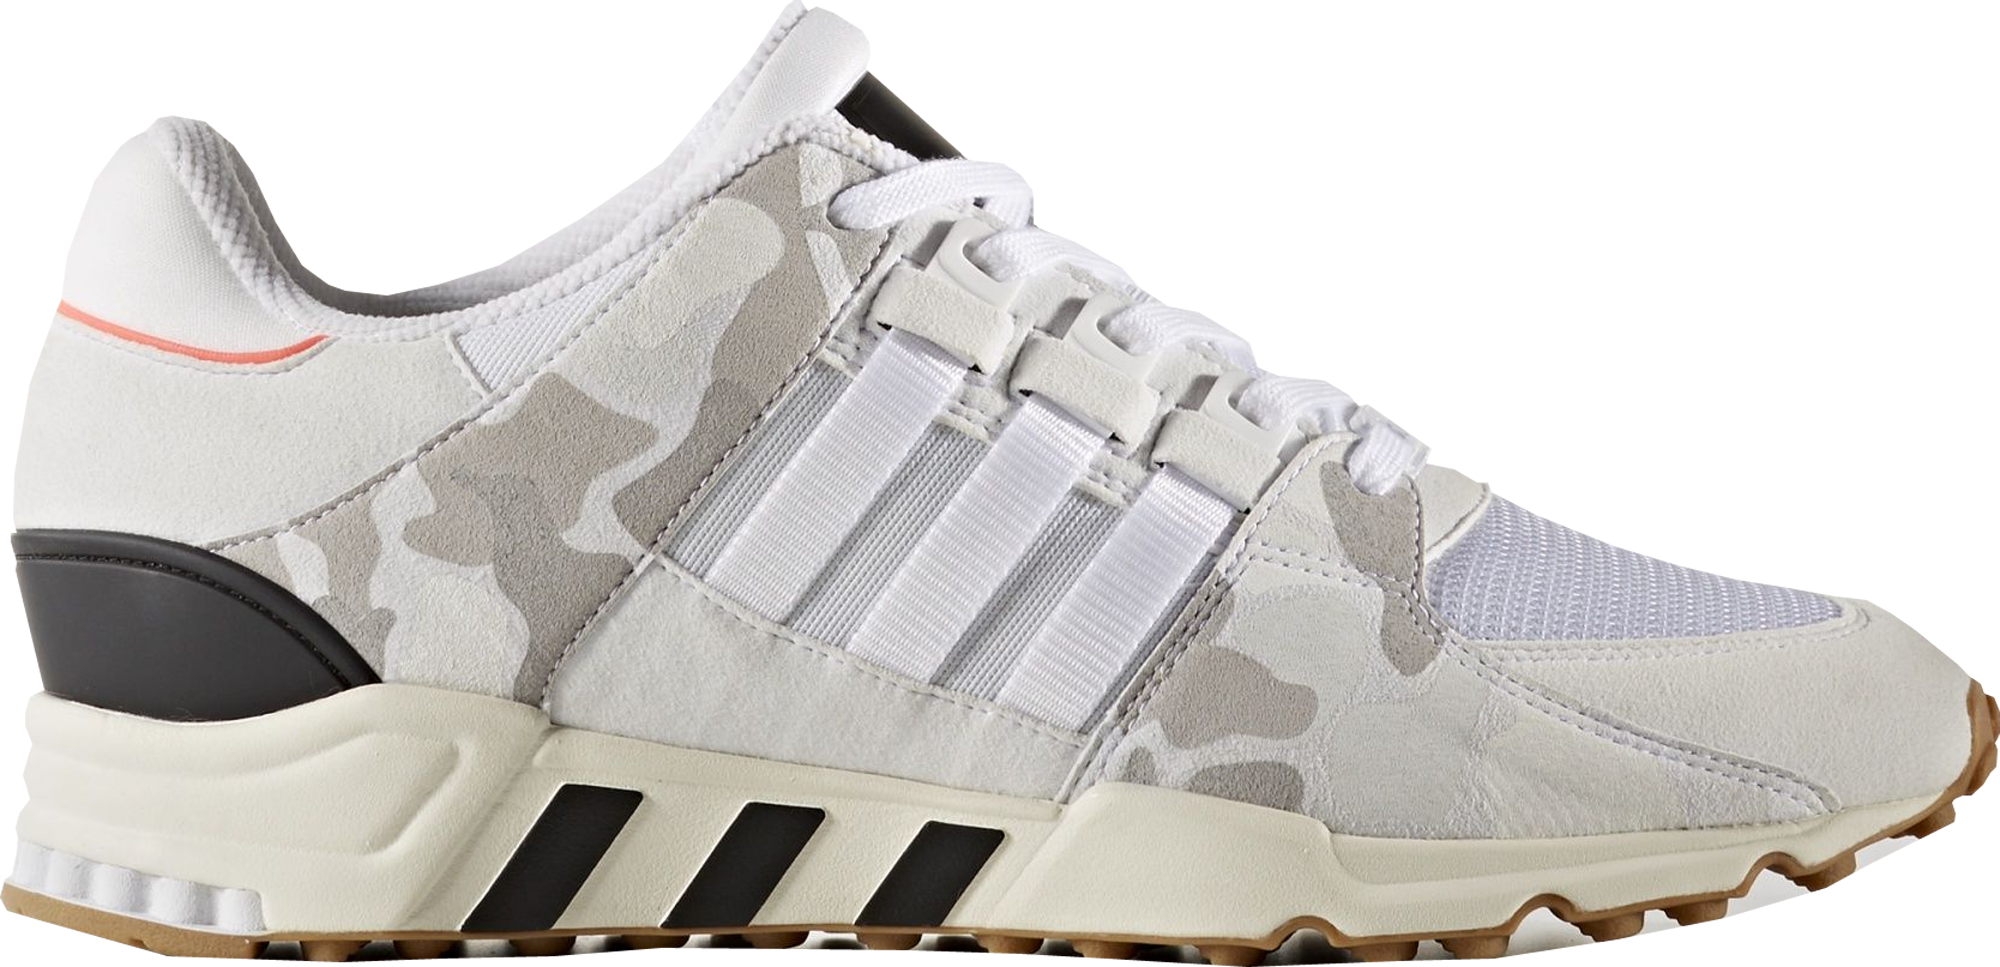 cheap for discount 7fa69 04448 Adidas EQT Support RF White Camo cheap adidas. Cheap Adidas NMD Runner Black  Grey ...